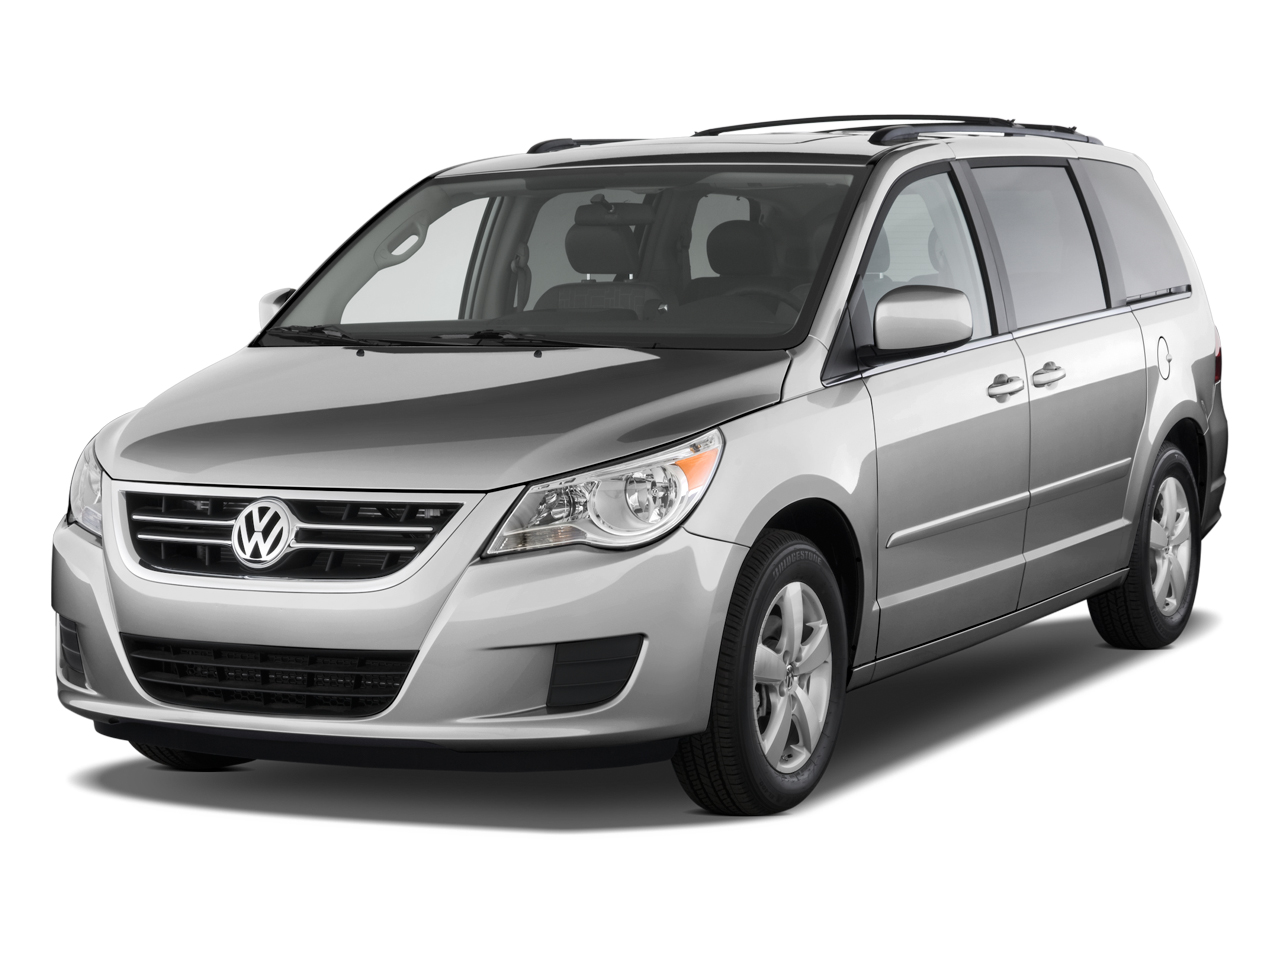 2010 Volkswagen Routan Vw Review Ratings Specs Prices And Photos The Car Connection